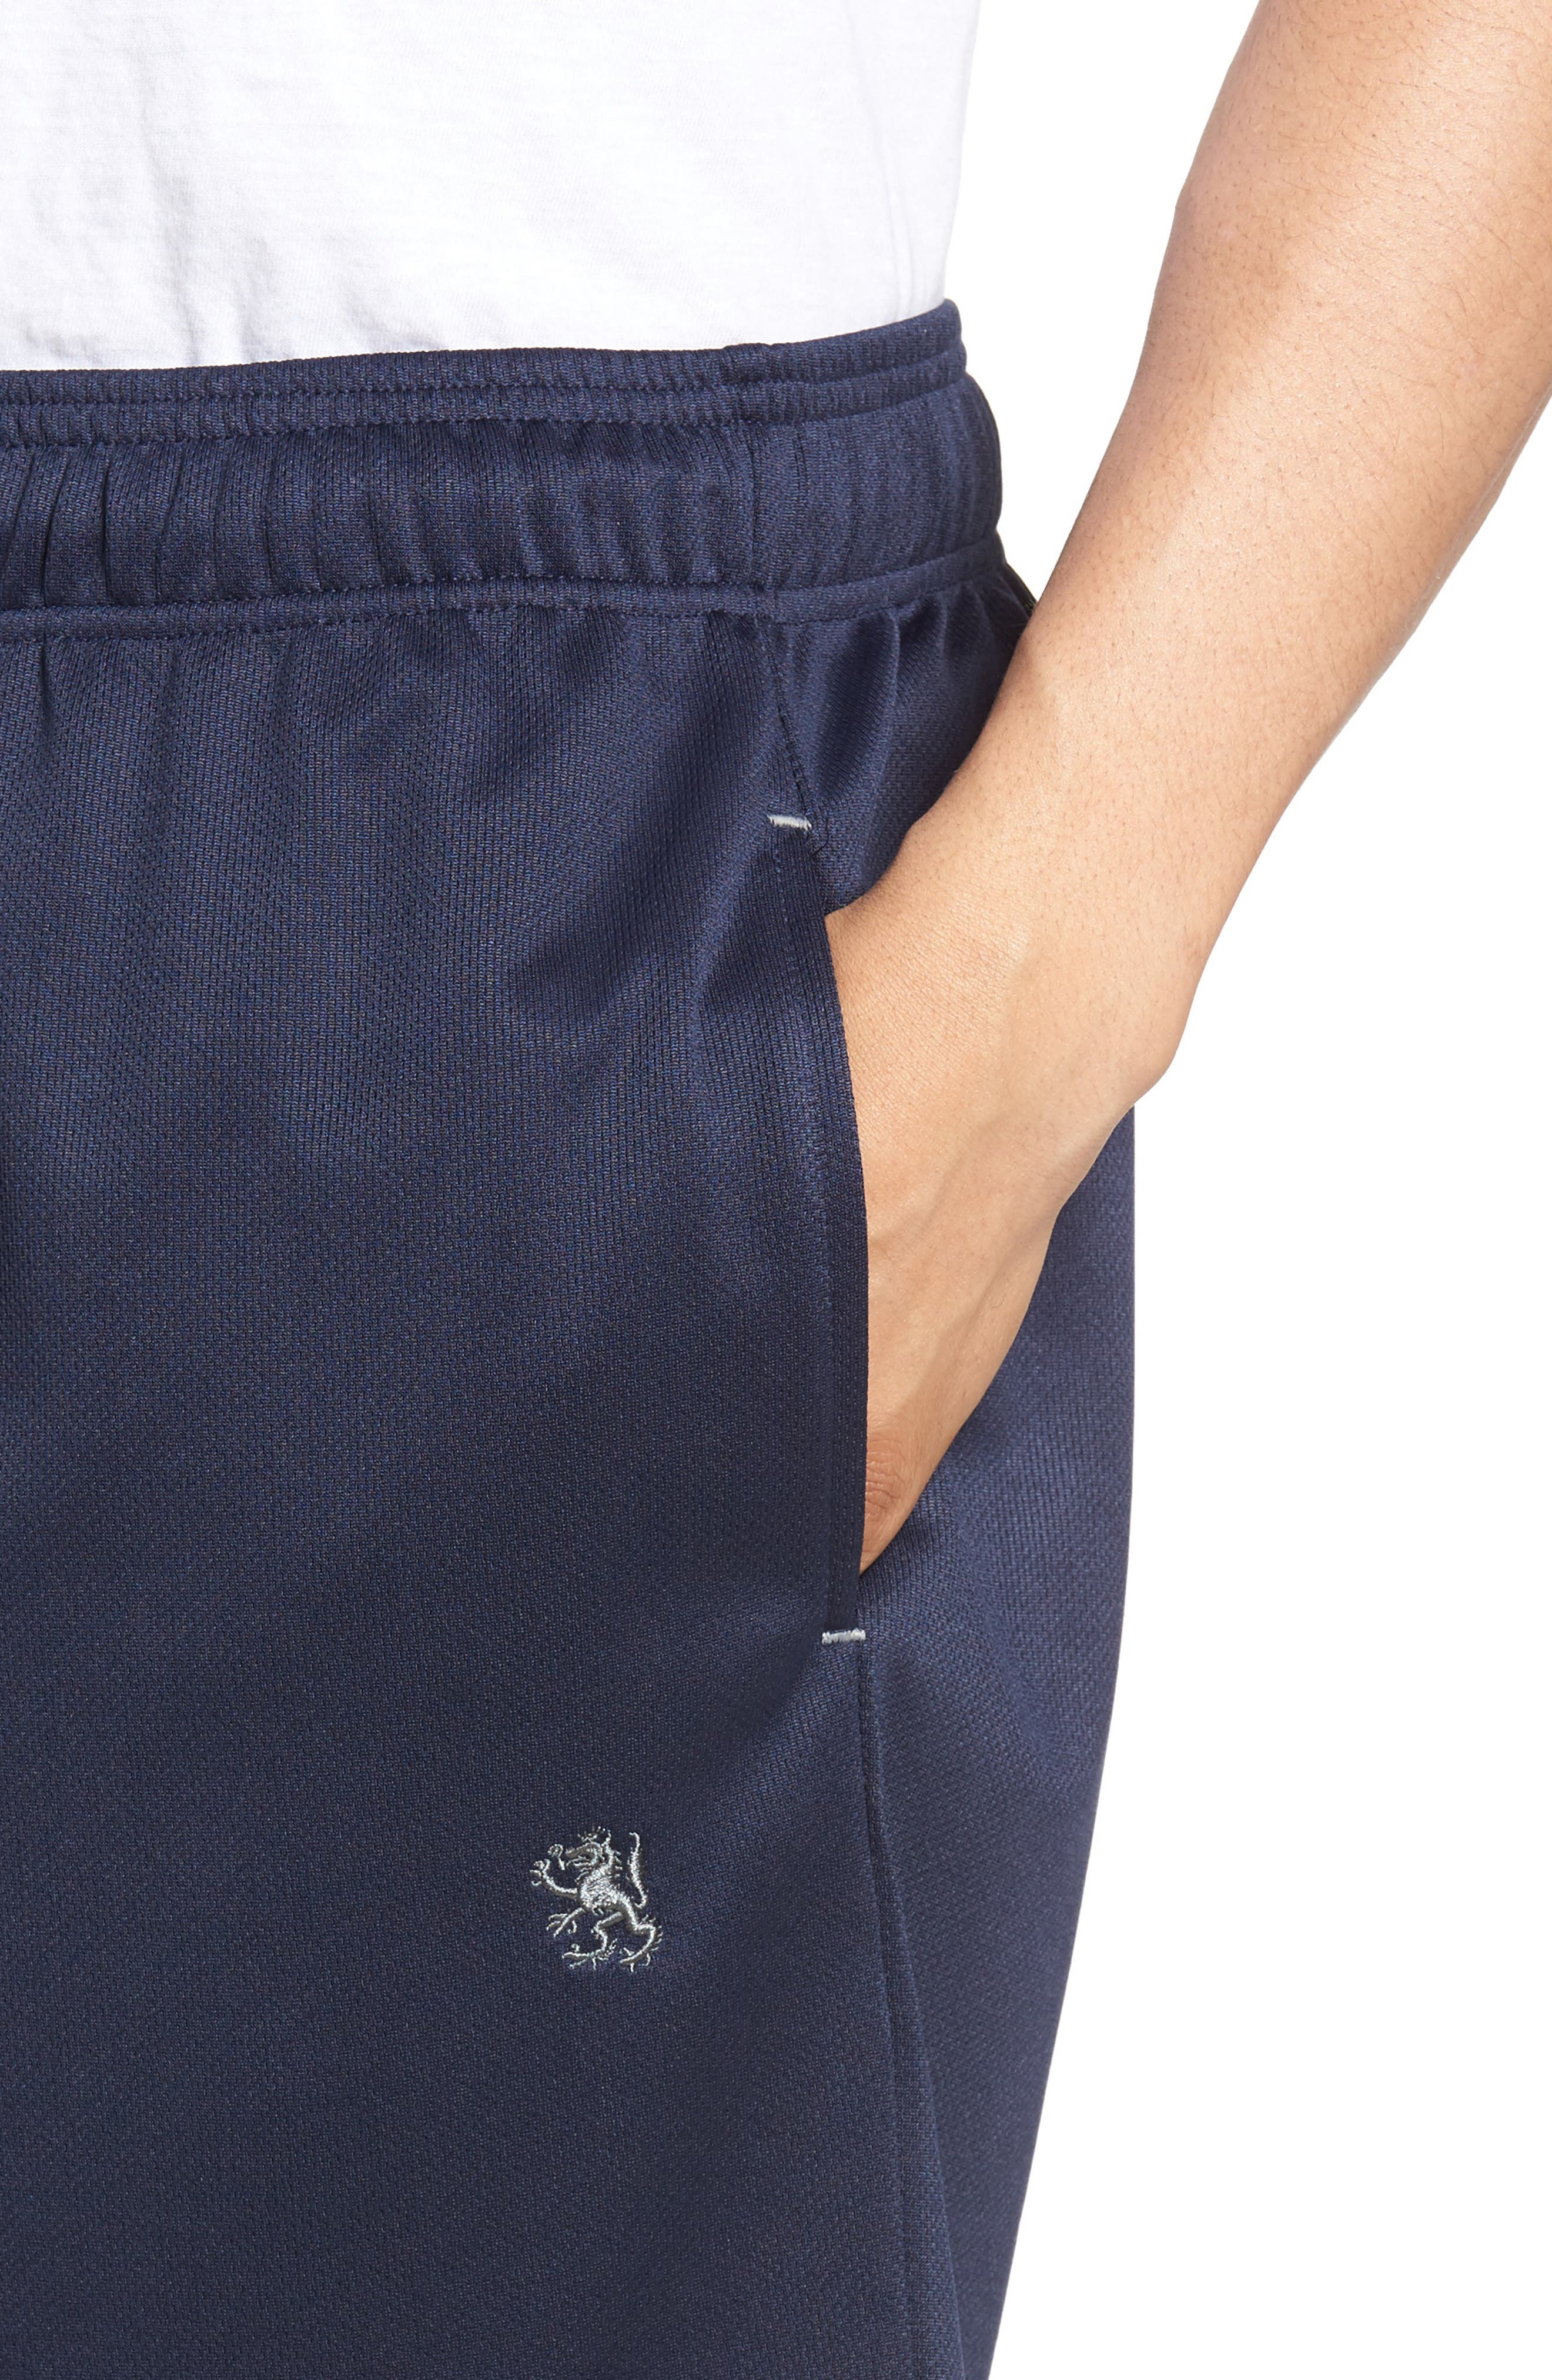 Work Out Lounge Shorts,                             Alternate thumbnail 12, color,